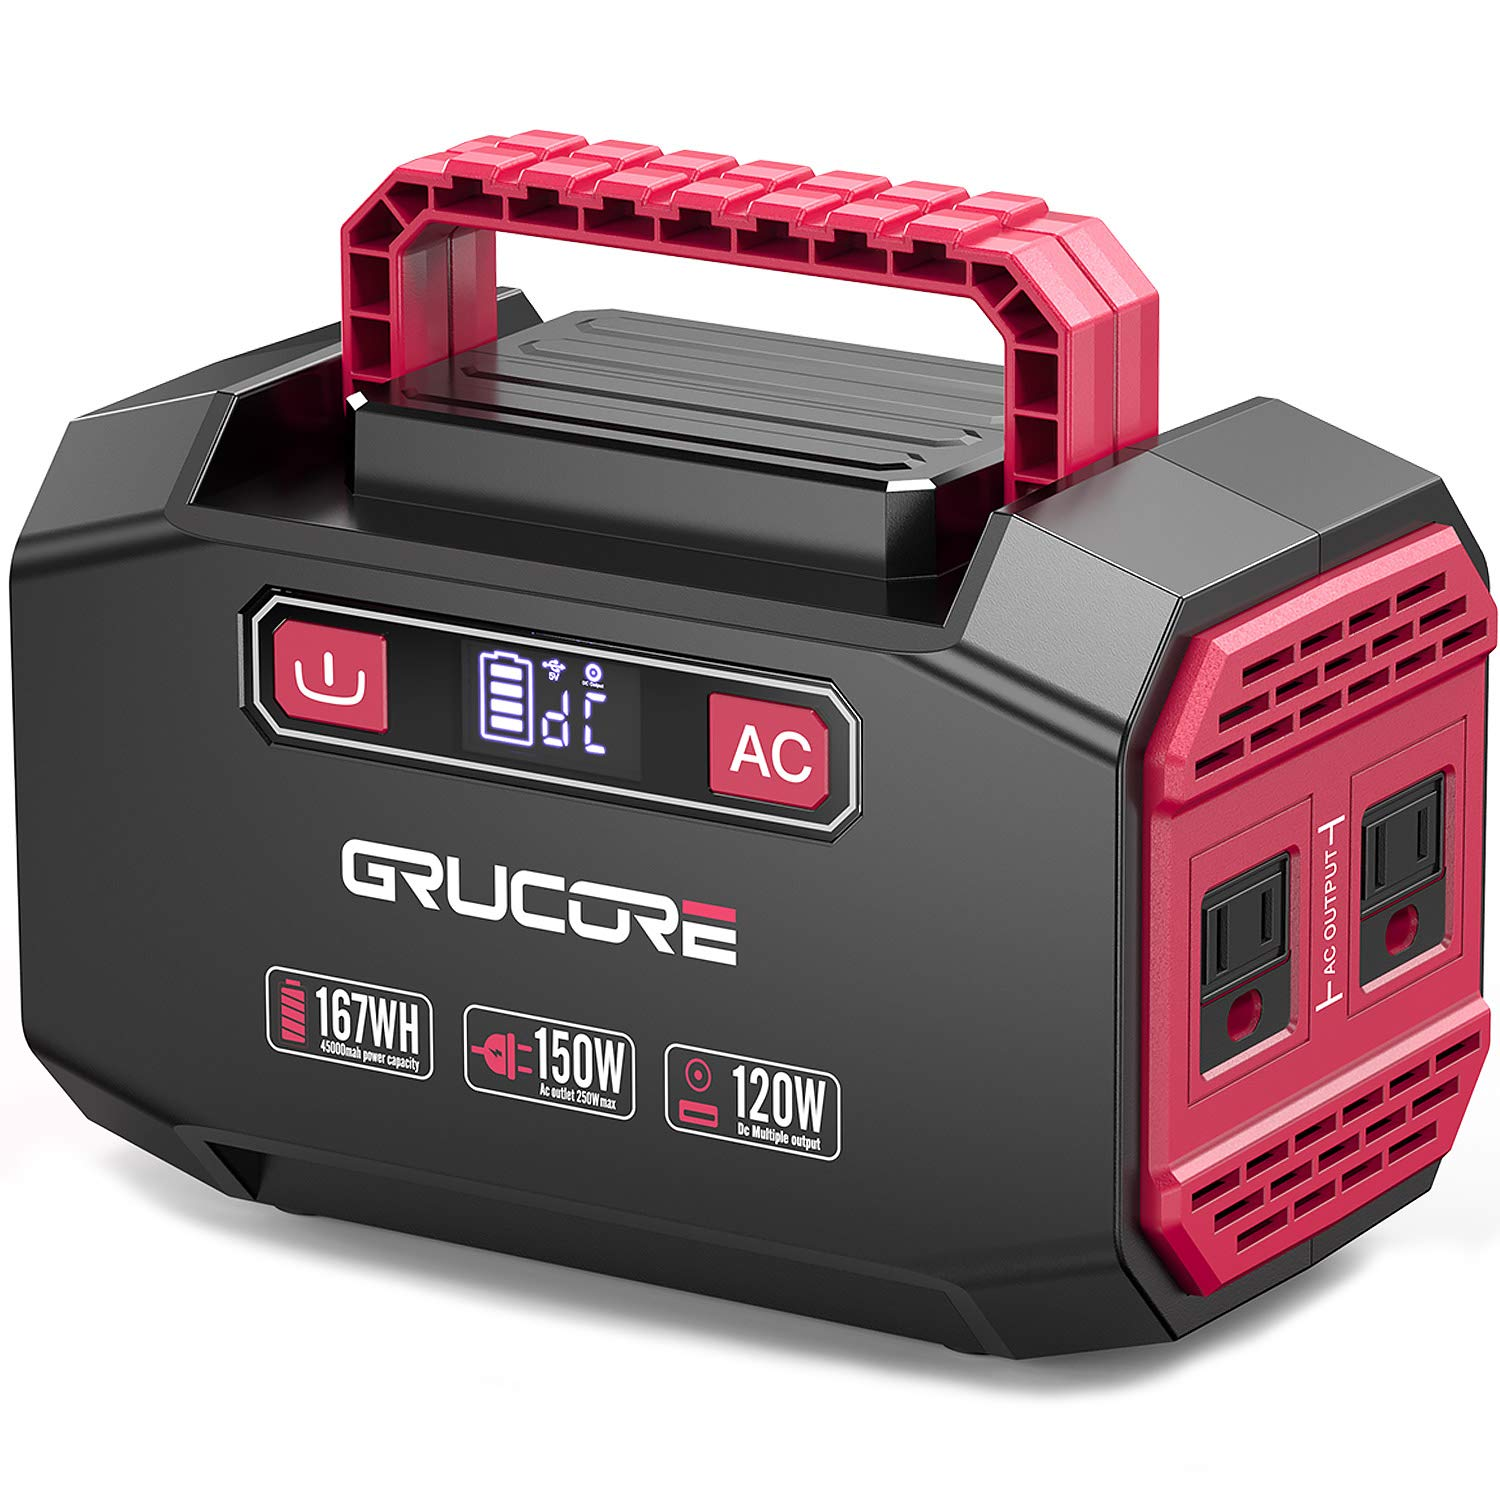 GRUCORE 178Wh Lithium Portable Power Station, CPAP Battery Pack Backup Power Supply with 110V/150W(Peak 250W) AC Inverter Outlet for Outdoors Camping Fishing Home Emergency ¡